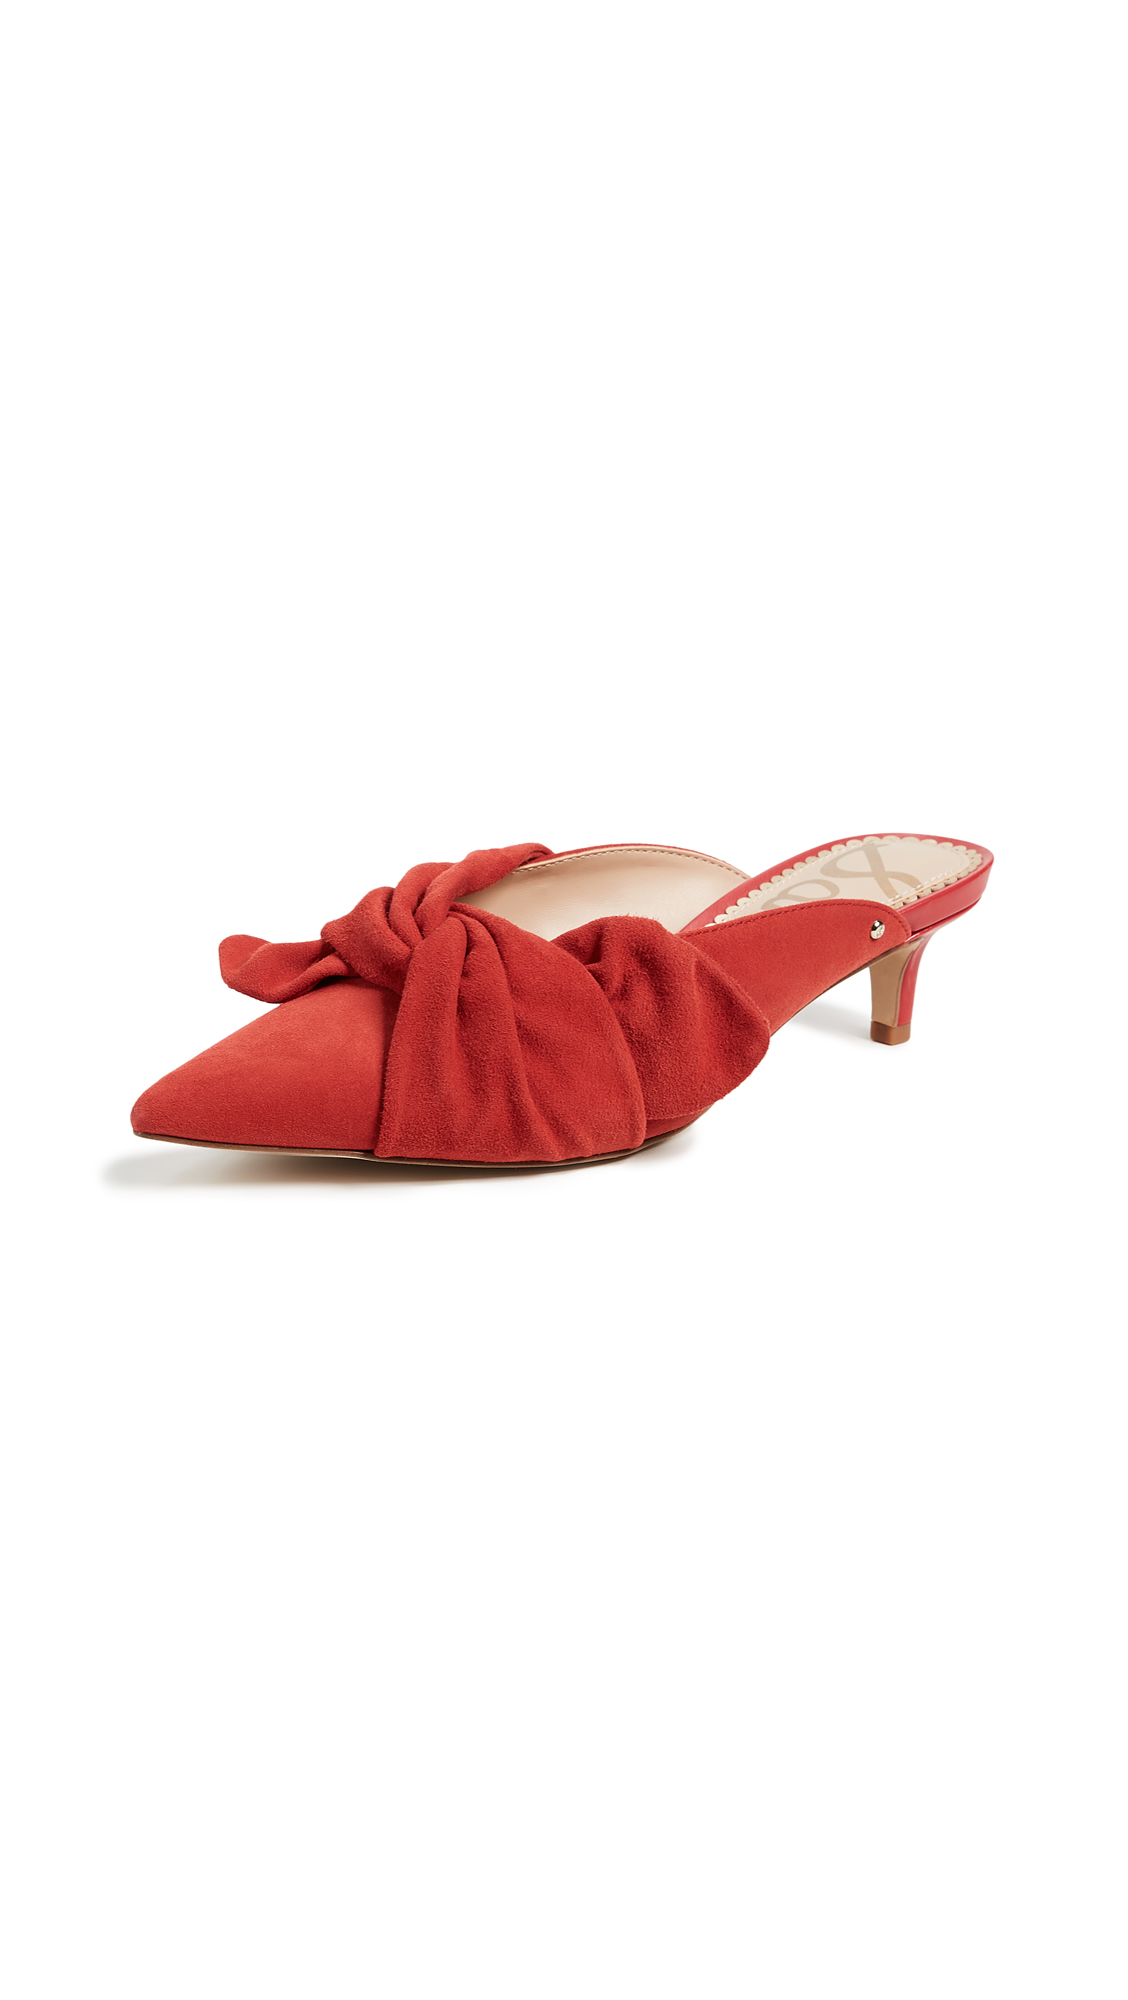 Sam Edelman Laney Bow Mules - Candy Red